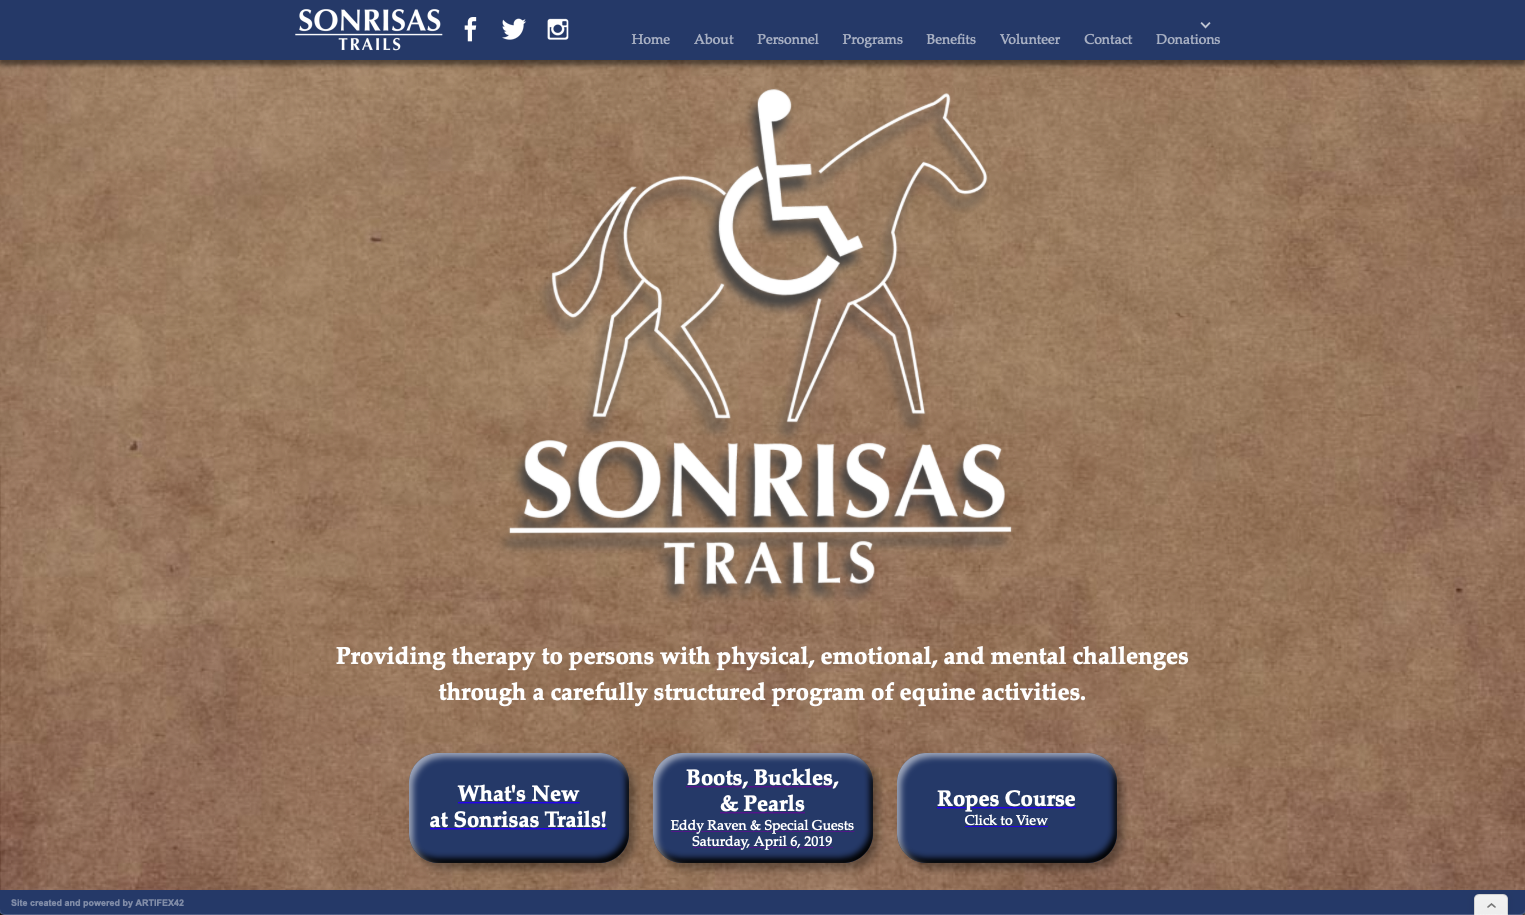 Sonrisas Trails